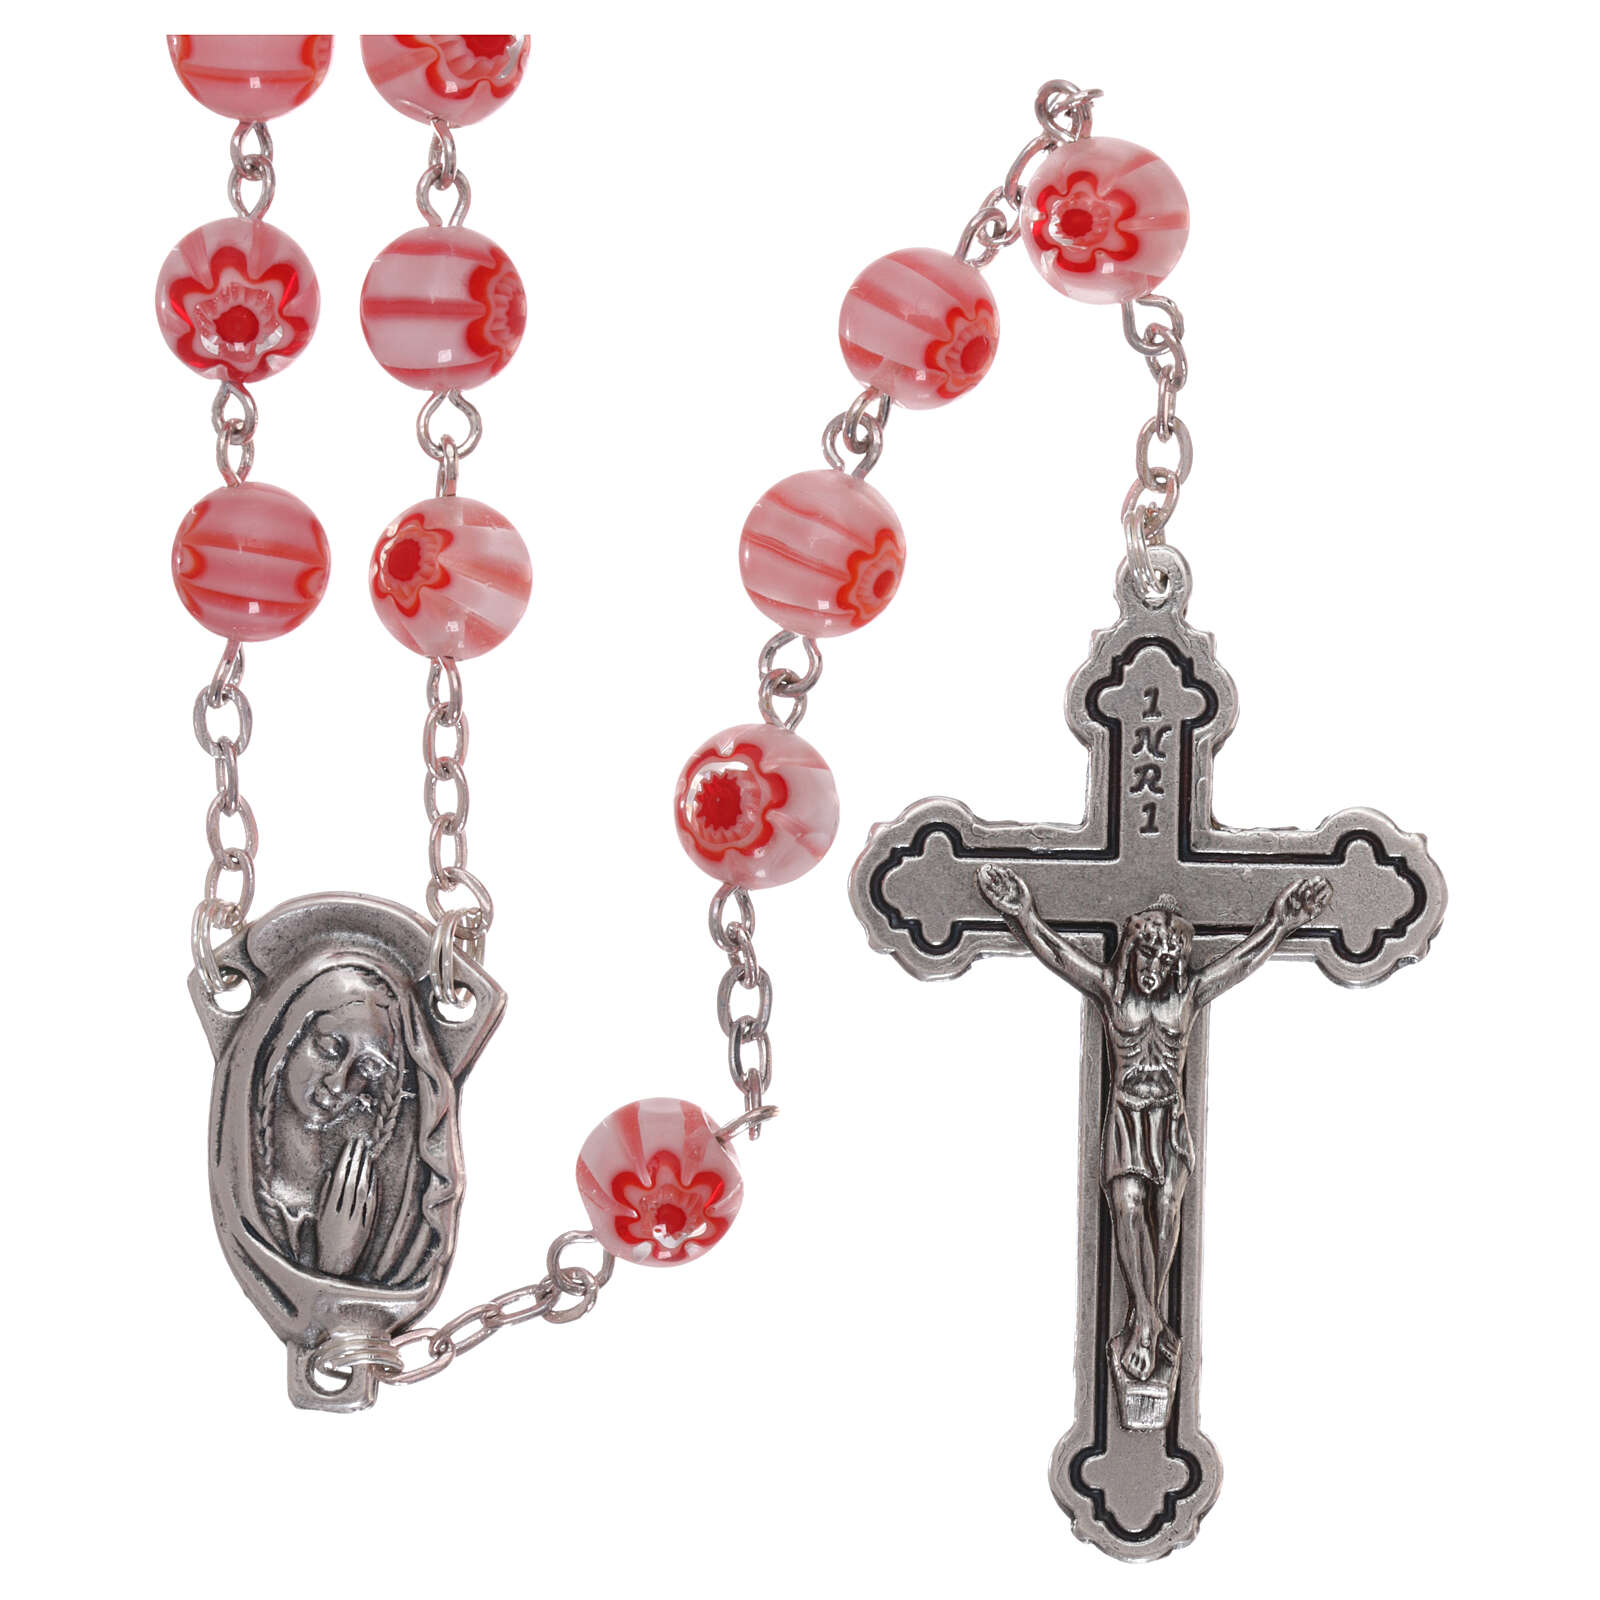 Glass rosary with pink beads with floral pattern and stripes in murrina style 8 mm 4